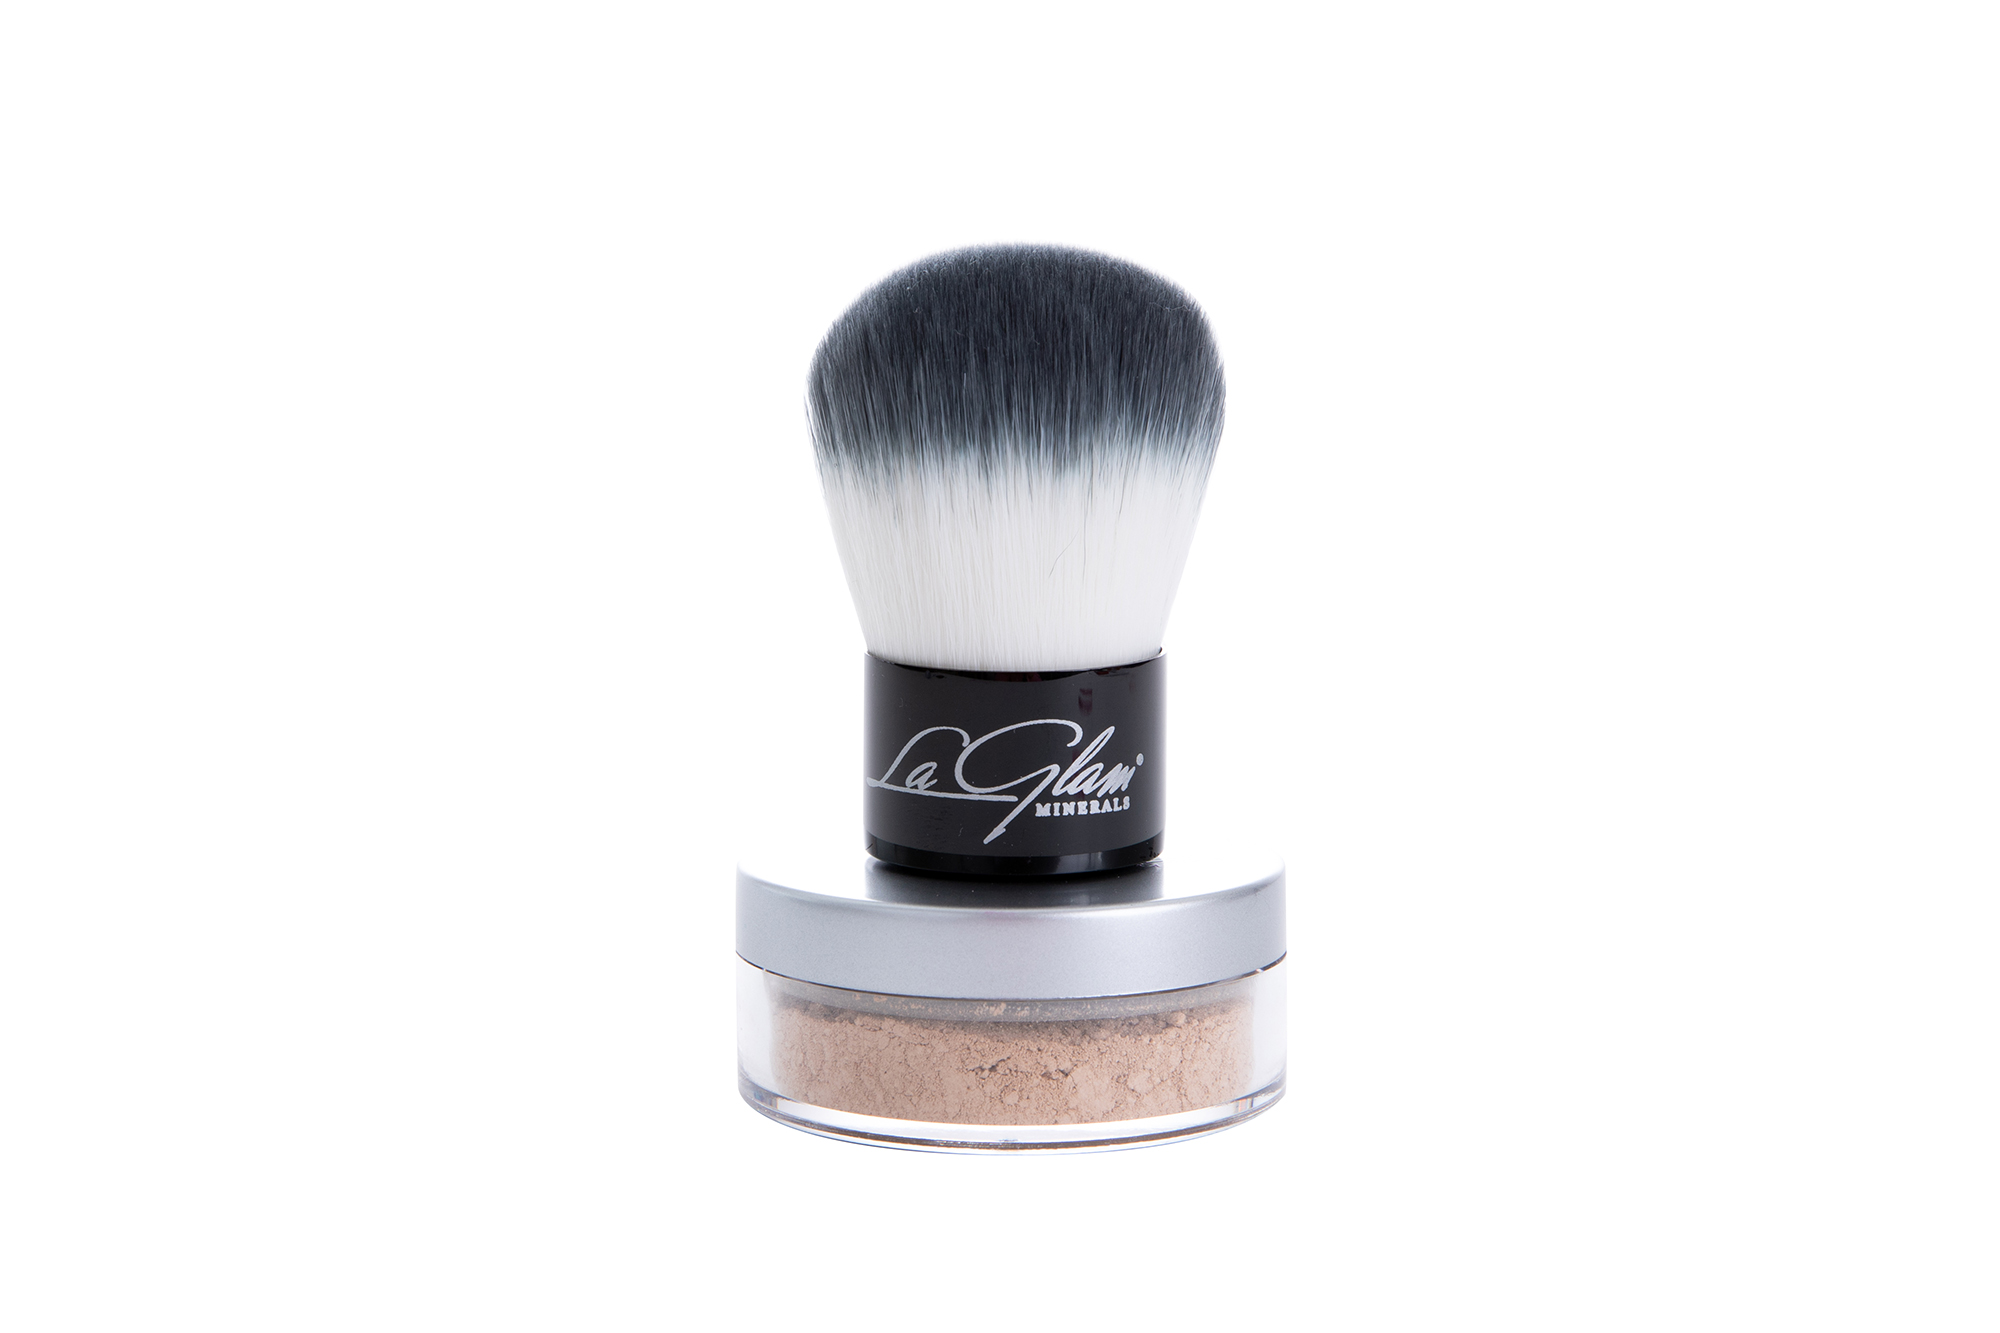 Kabuki Powder Foundation Brush Laglam Minerals